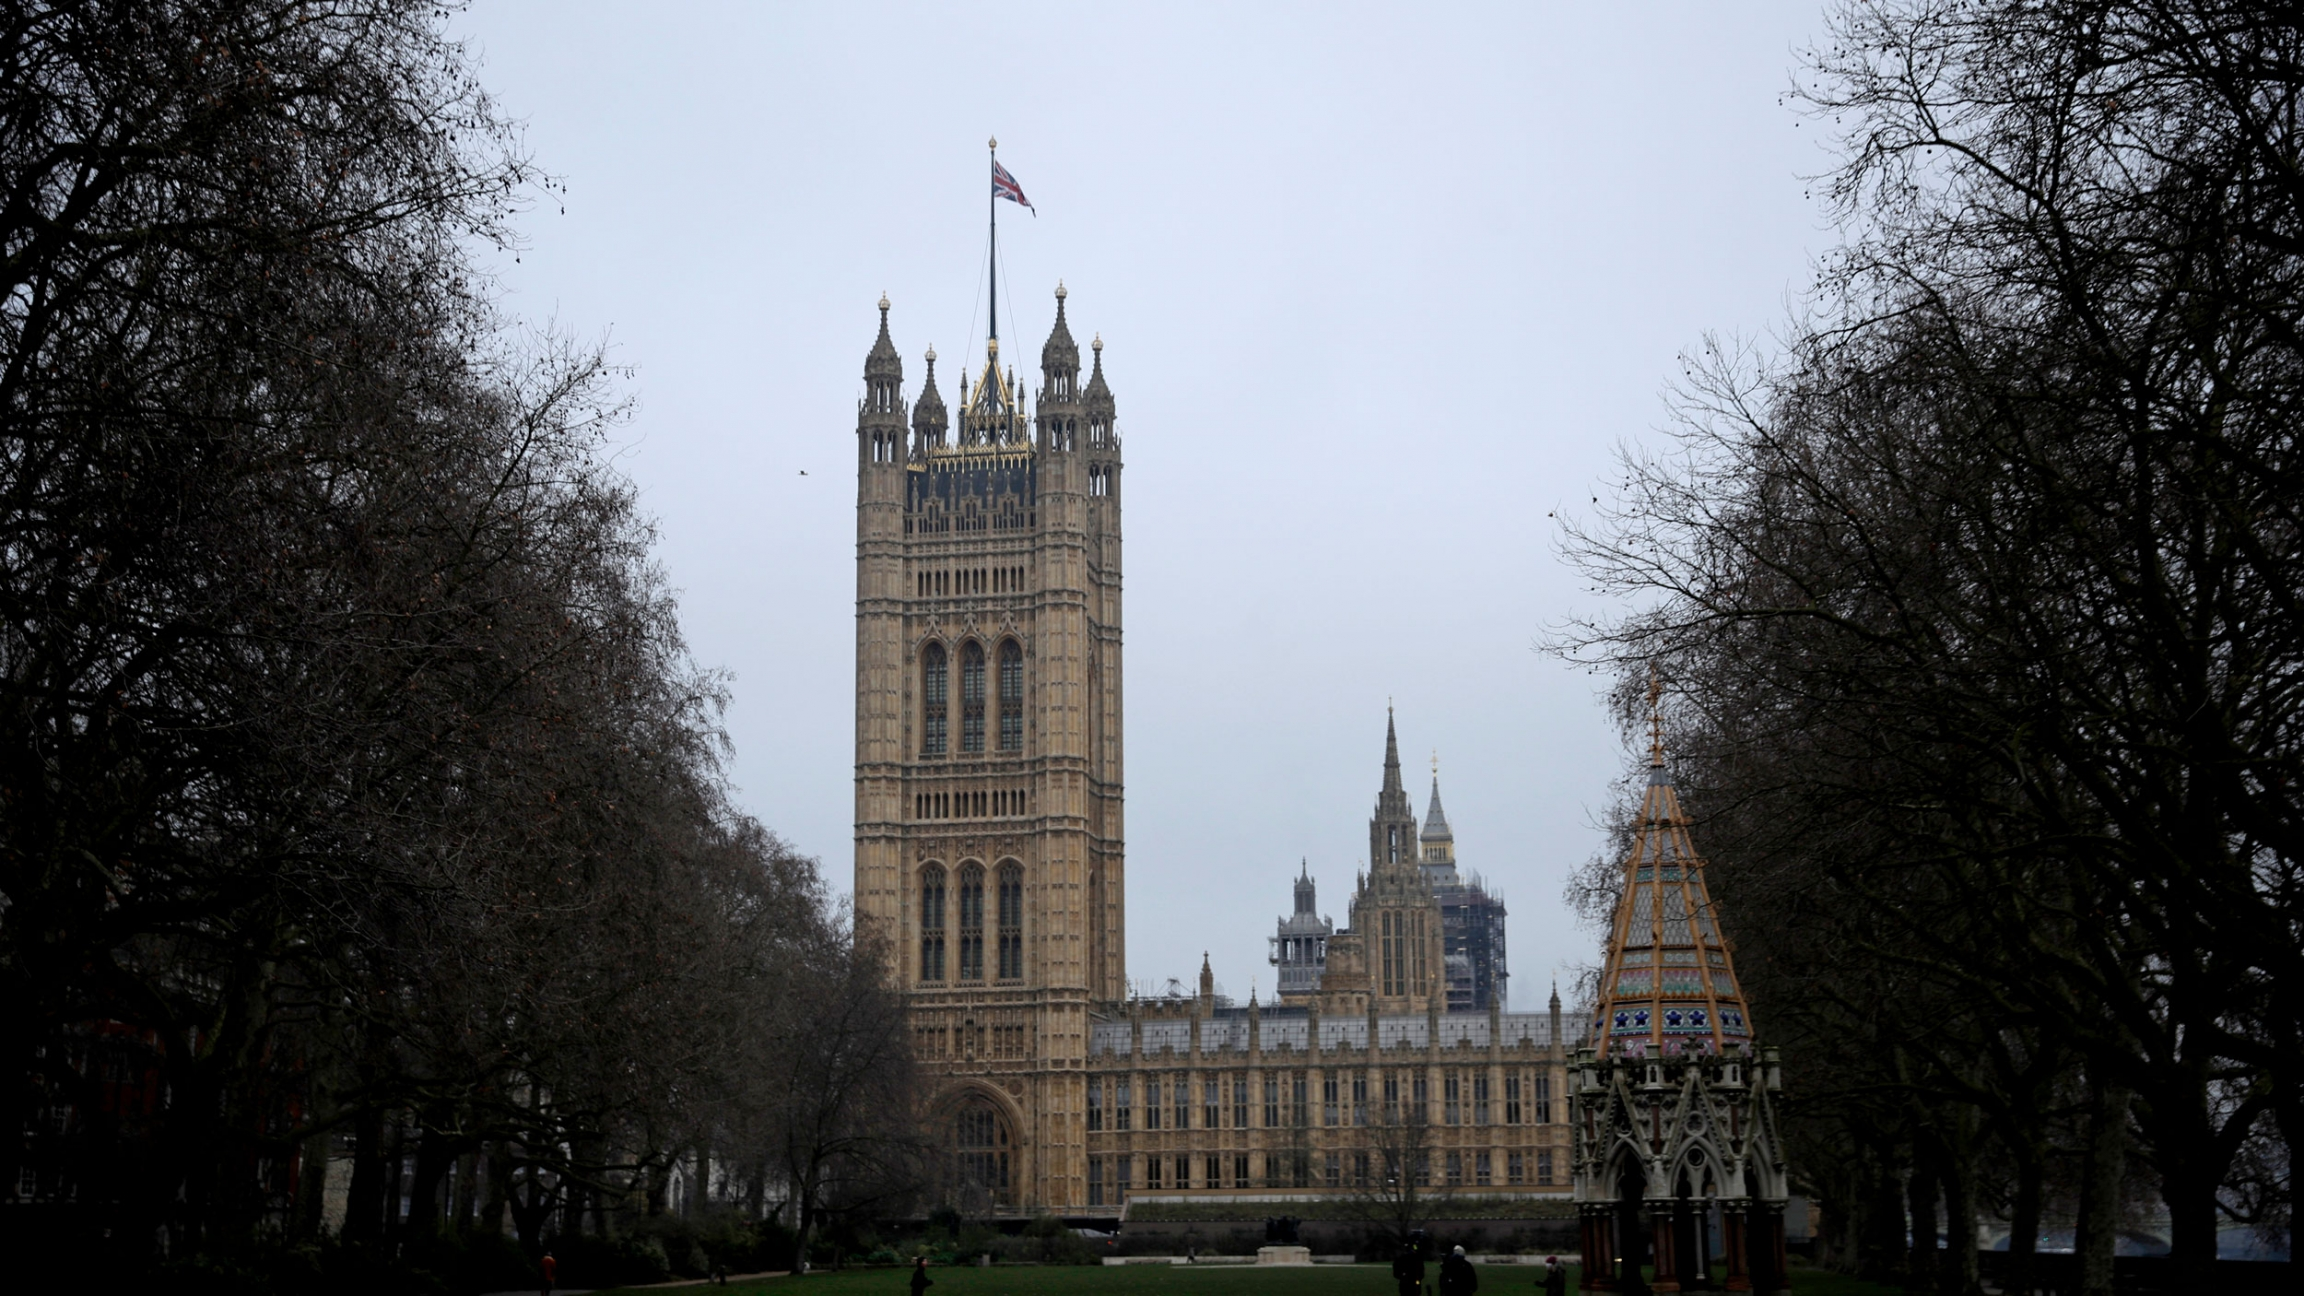 The Houses of Parliament is shown in the distance in London with trees framing the either side of the photograph.